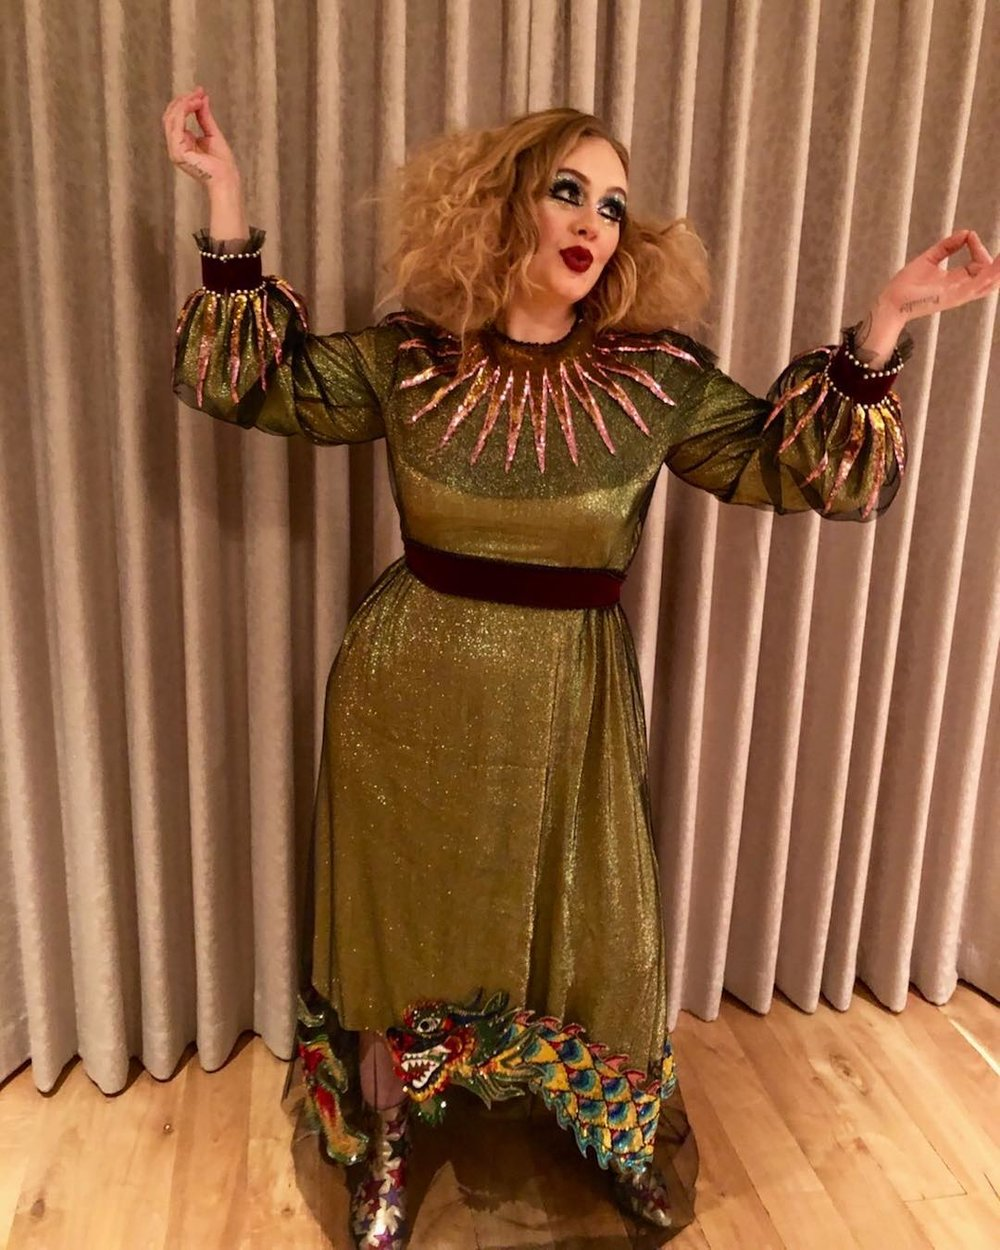 Dazzle Adele - Breaking her social media Hiatus, the Tottenham native showed off this shimmery Jester look.